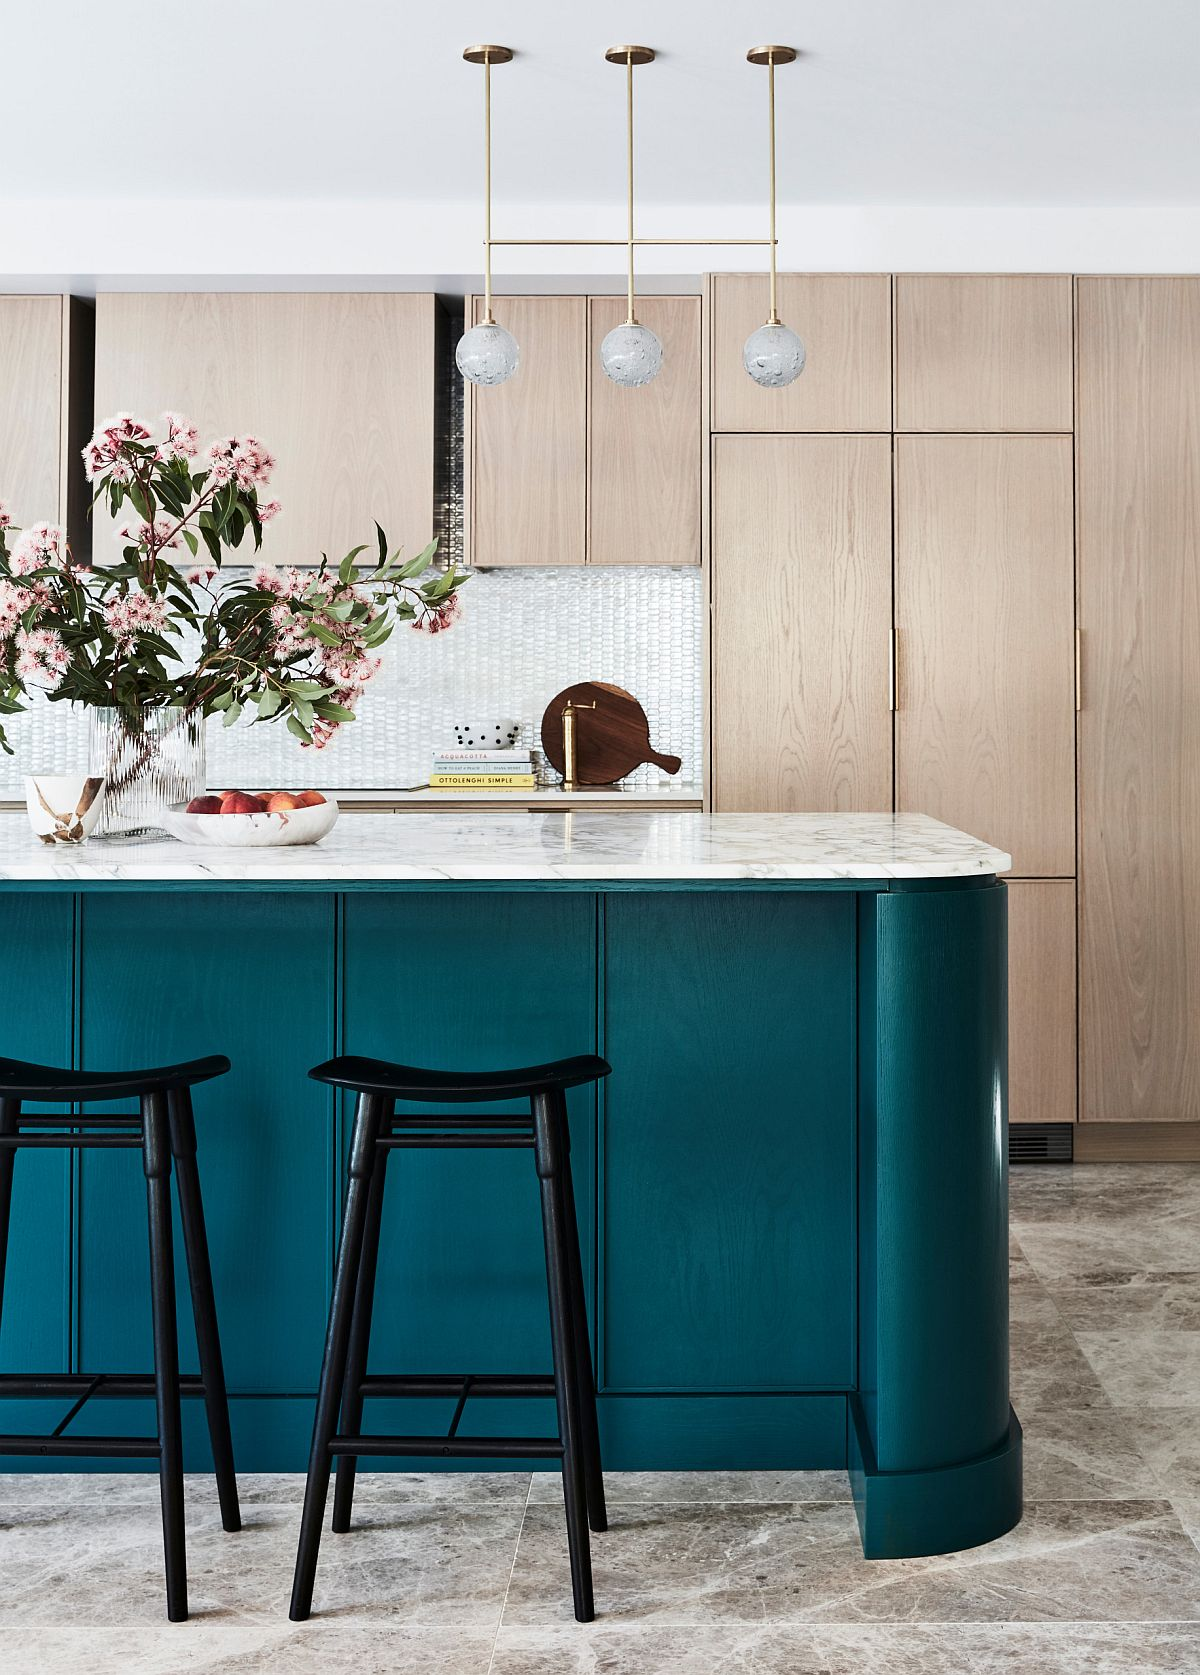 Touch of teal for the kitchen island brings color to the neutral space in white and gray